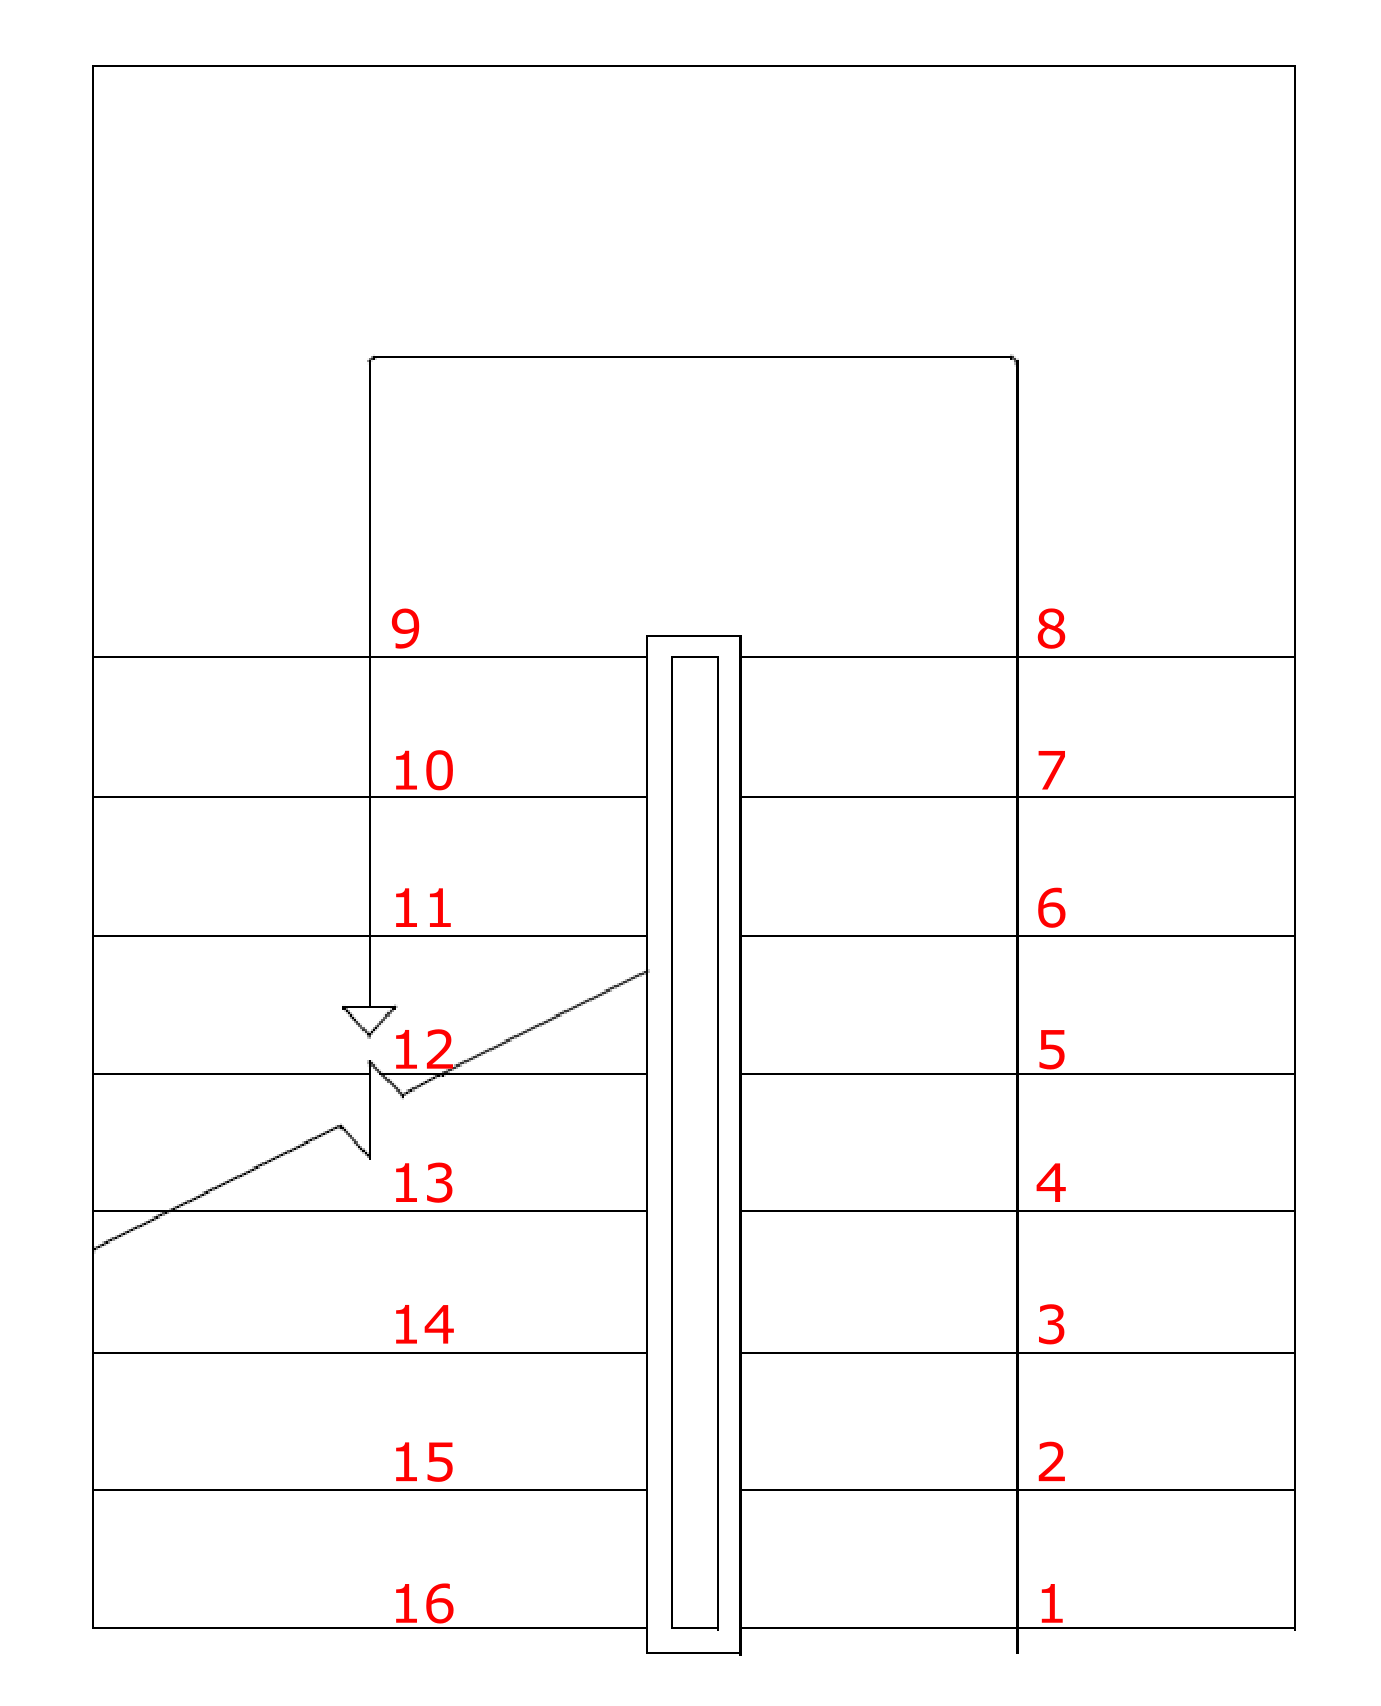 Stairs plan with numbered stairs